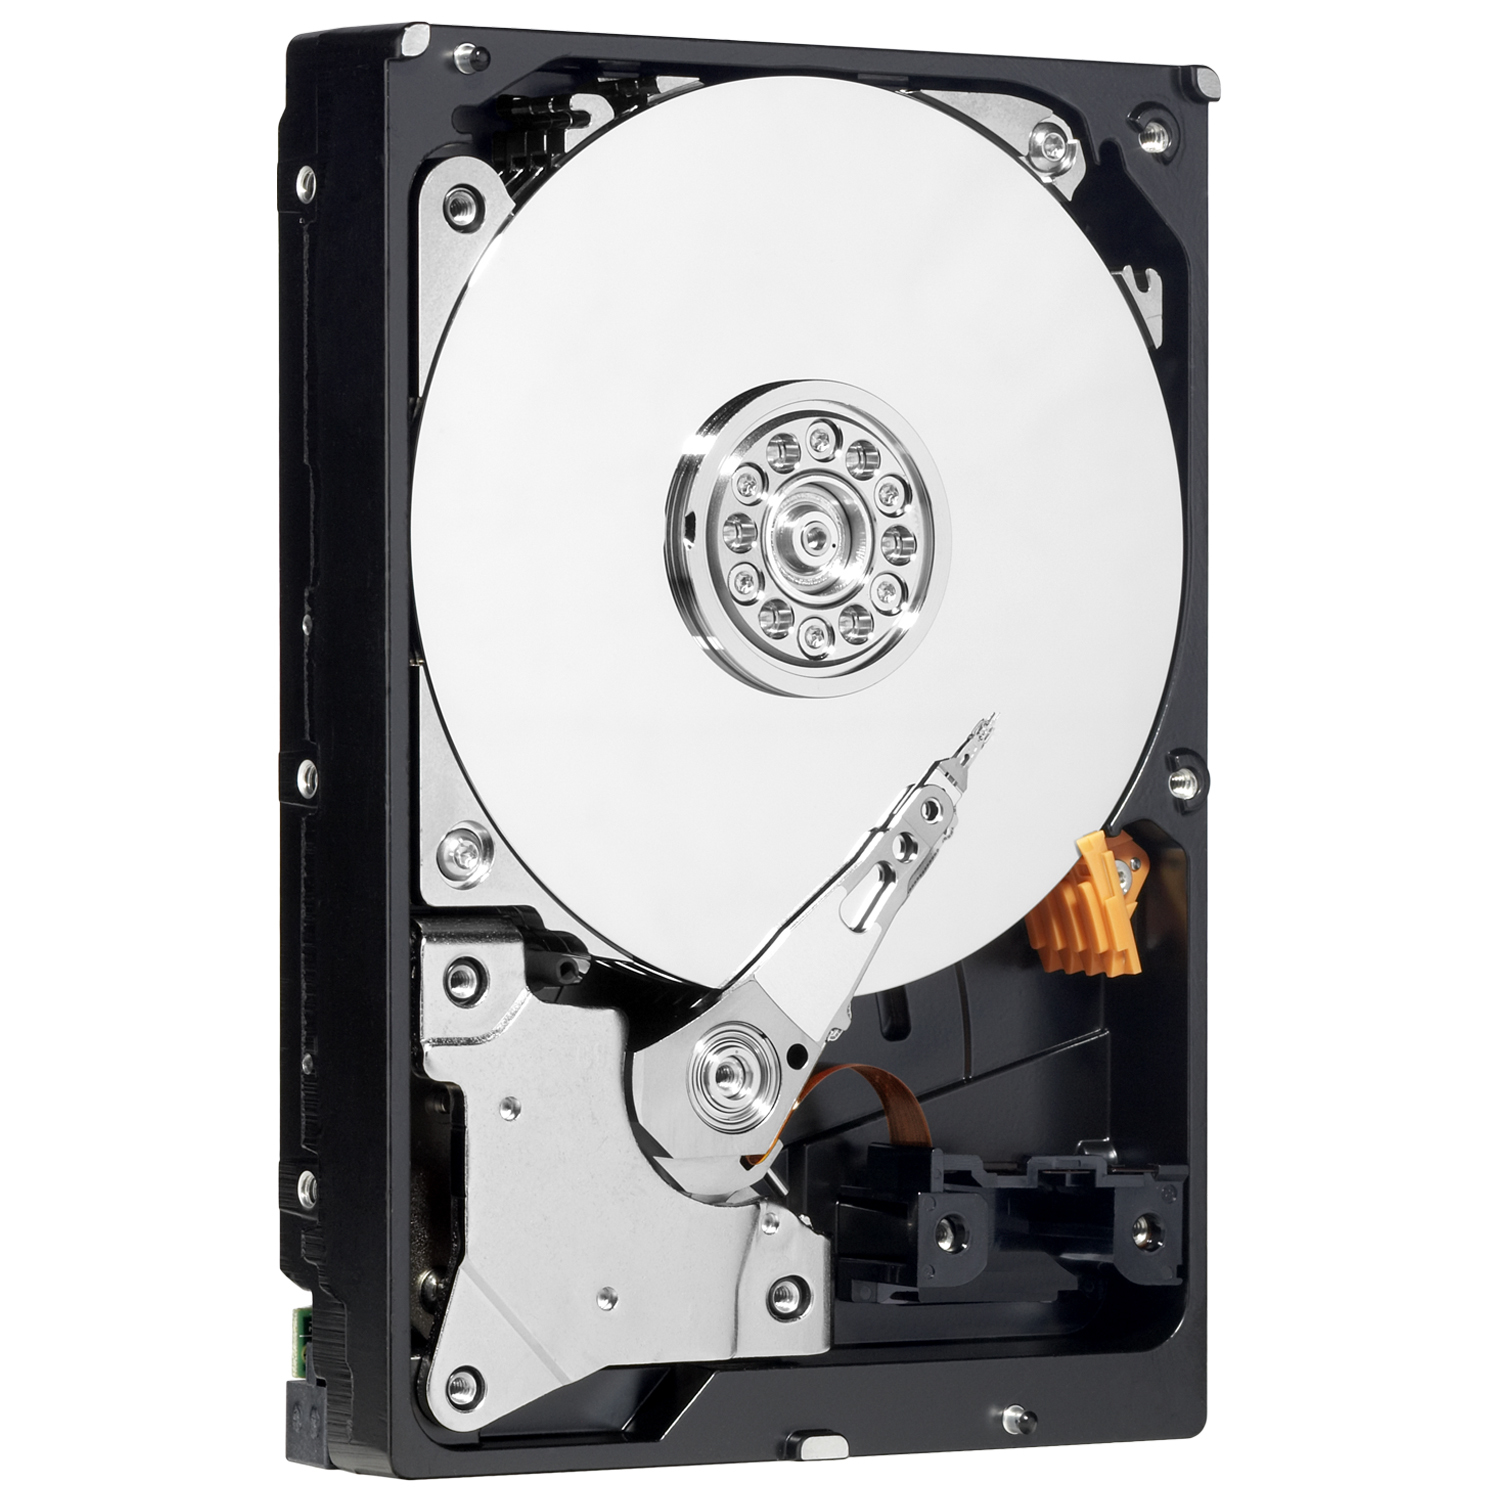 WESTERN DIGITAL AV-GP 1000GB SERIAL ATA III INTERNAL HARD DRIVE